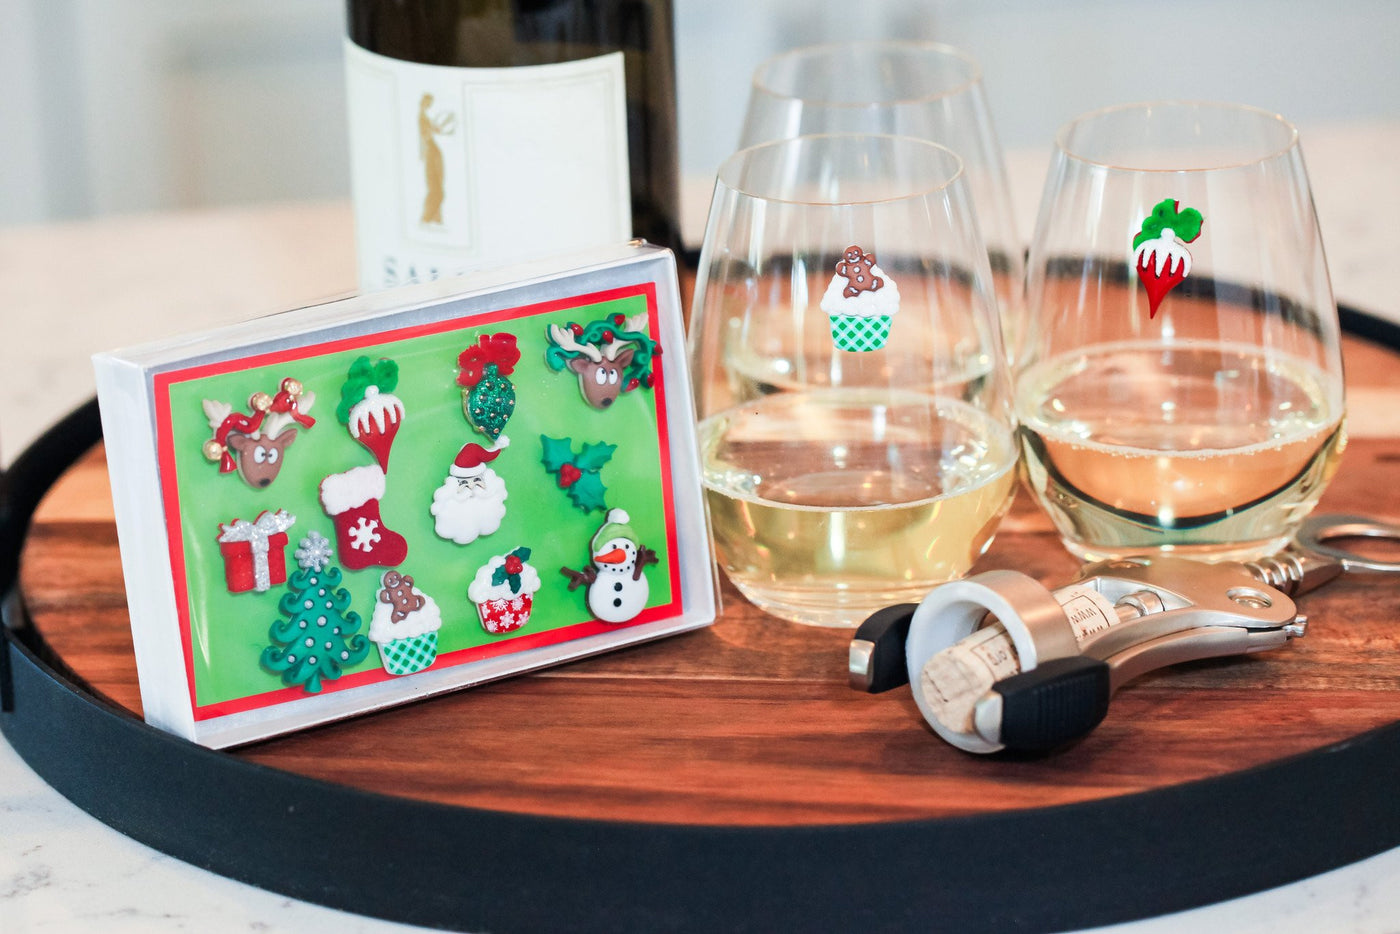 Christmas Wine Sayings Magnet Gift Set  Christmas Magnet Set  Wine Magnets  Wine Gift  Magnet Set  Magnet Set in Tin  Co-Worker Gift